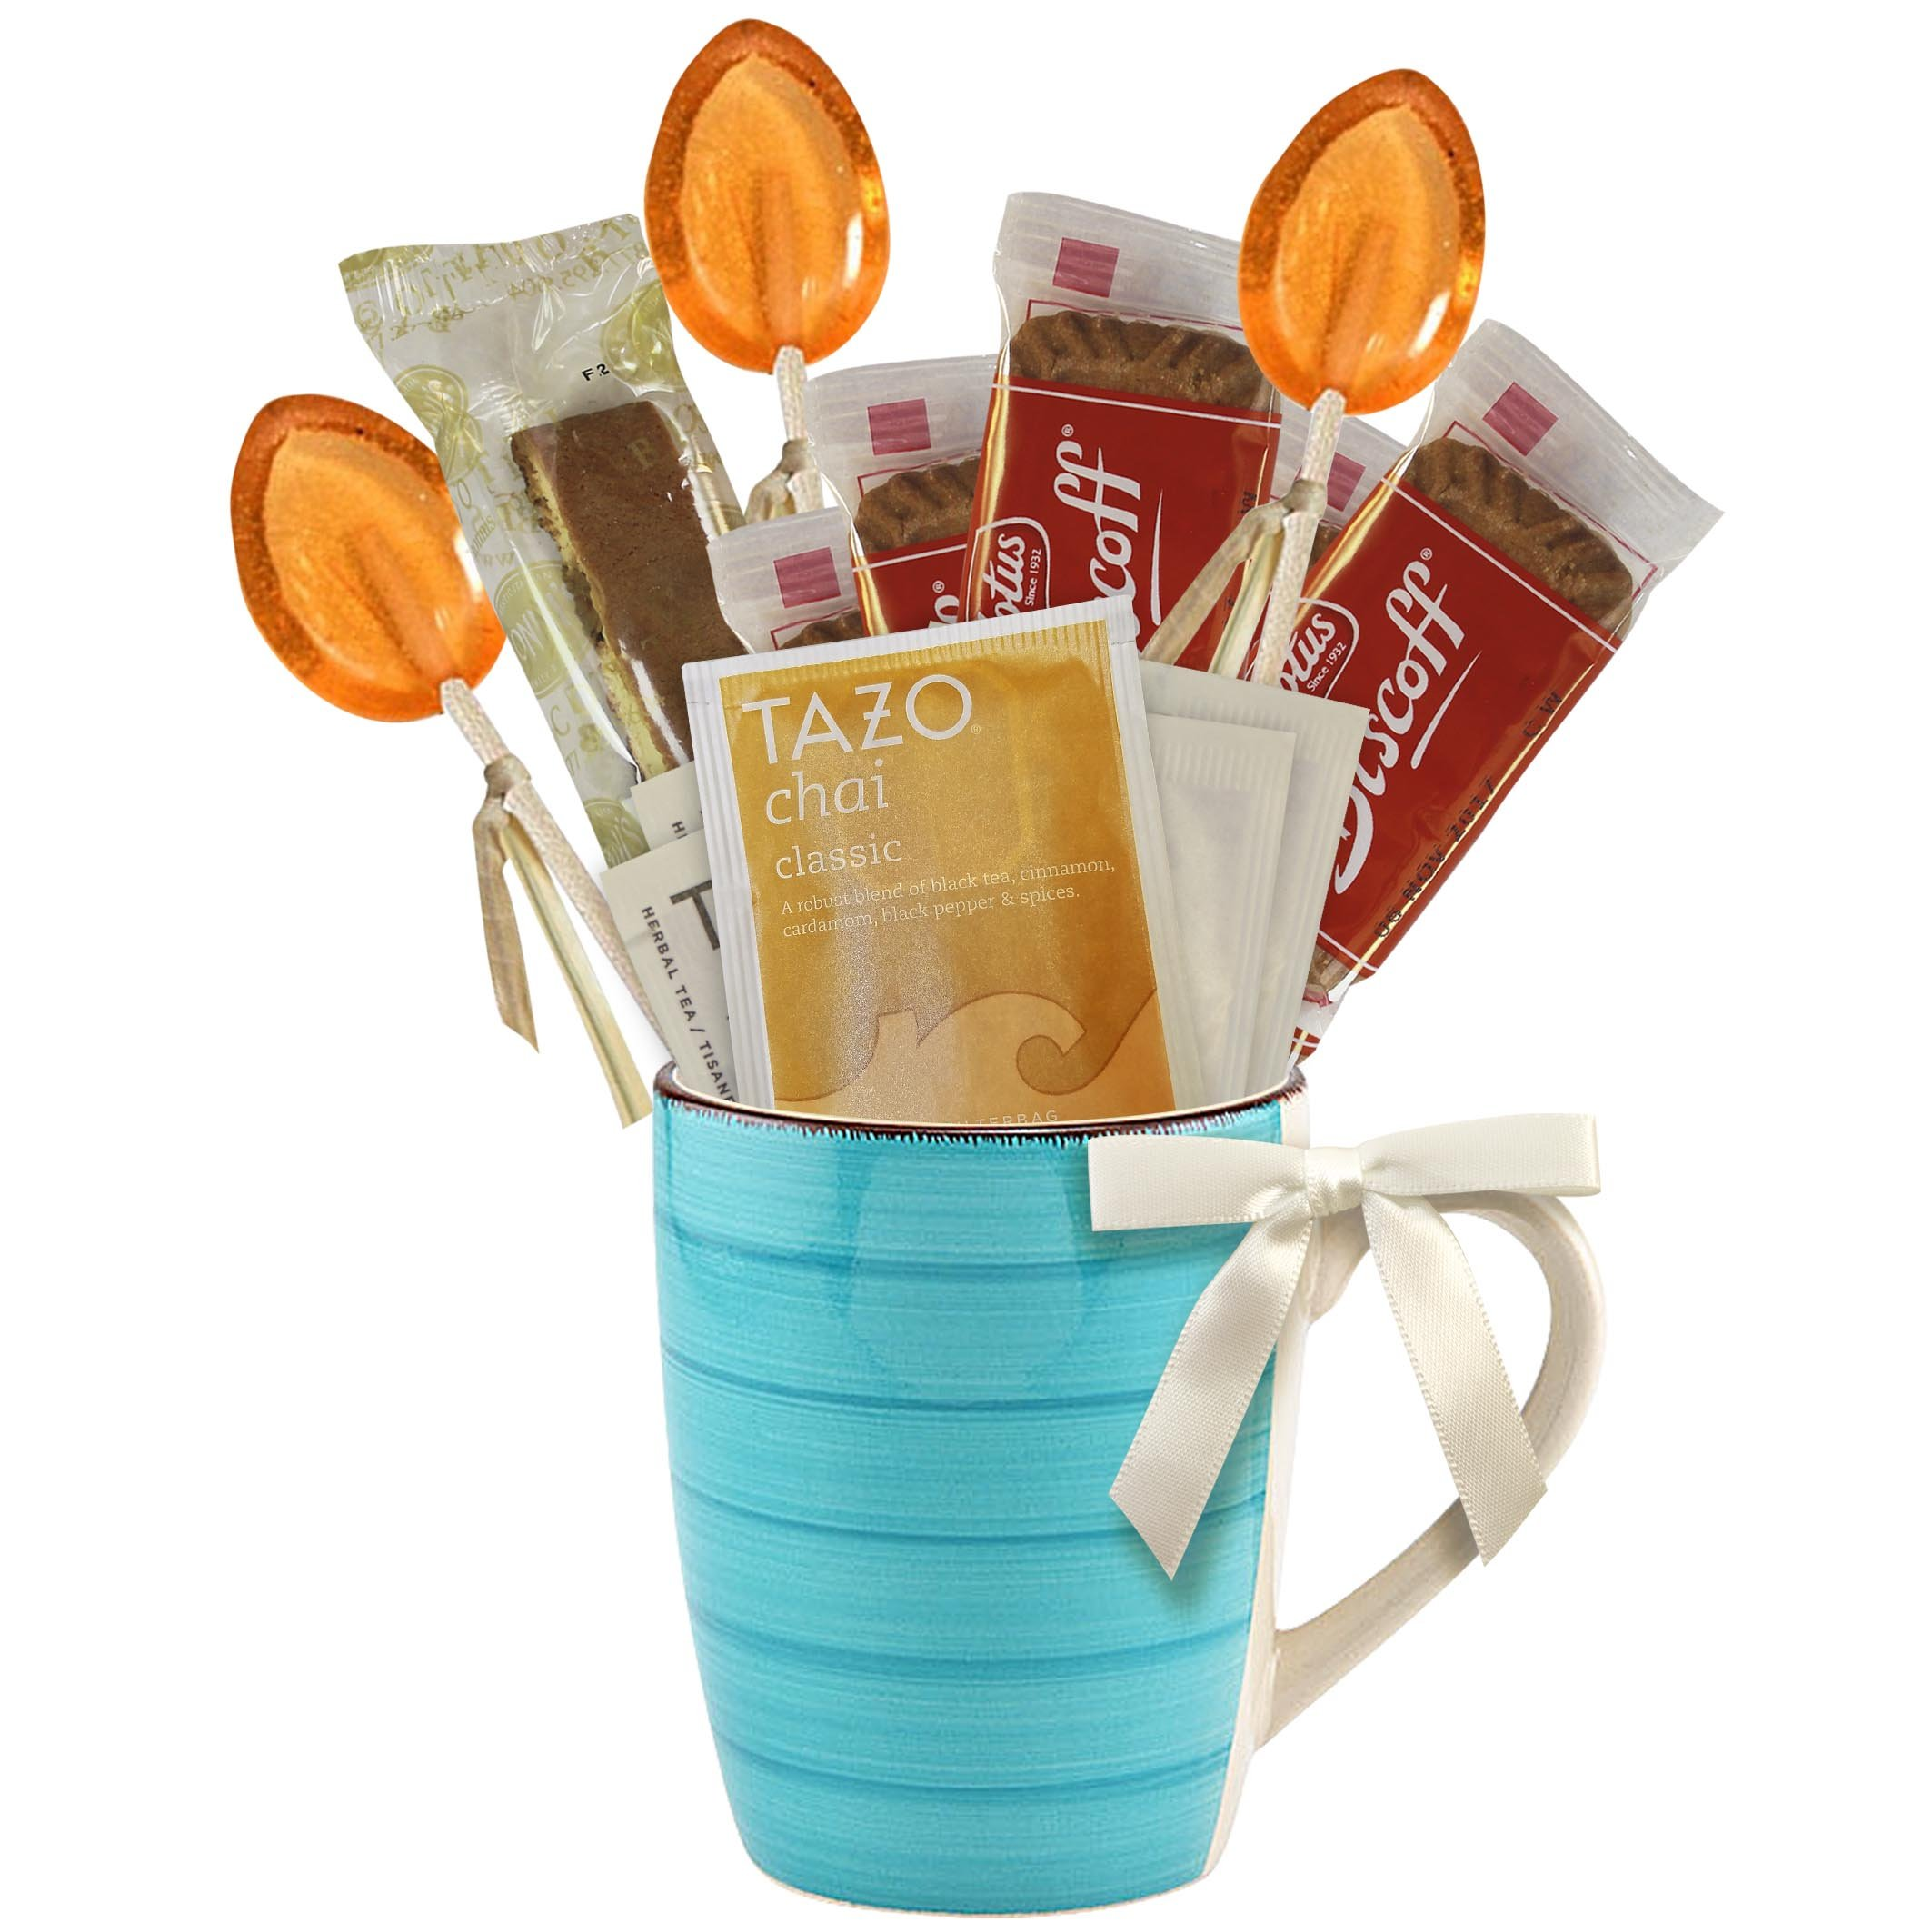 Cottage Lane Hot Tea Mug Boxed Set Featuring Tazo Herbal Tea Bags, Honey Spoon Stirrers, Nonni's Biscotti, and Biscoff Lotus Cookies (Chai Classic Tea, Teal Mug)